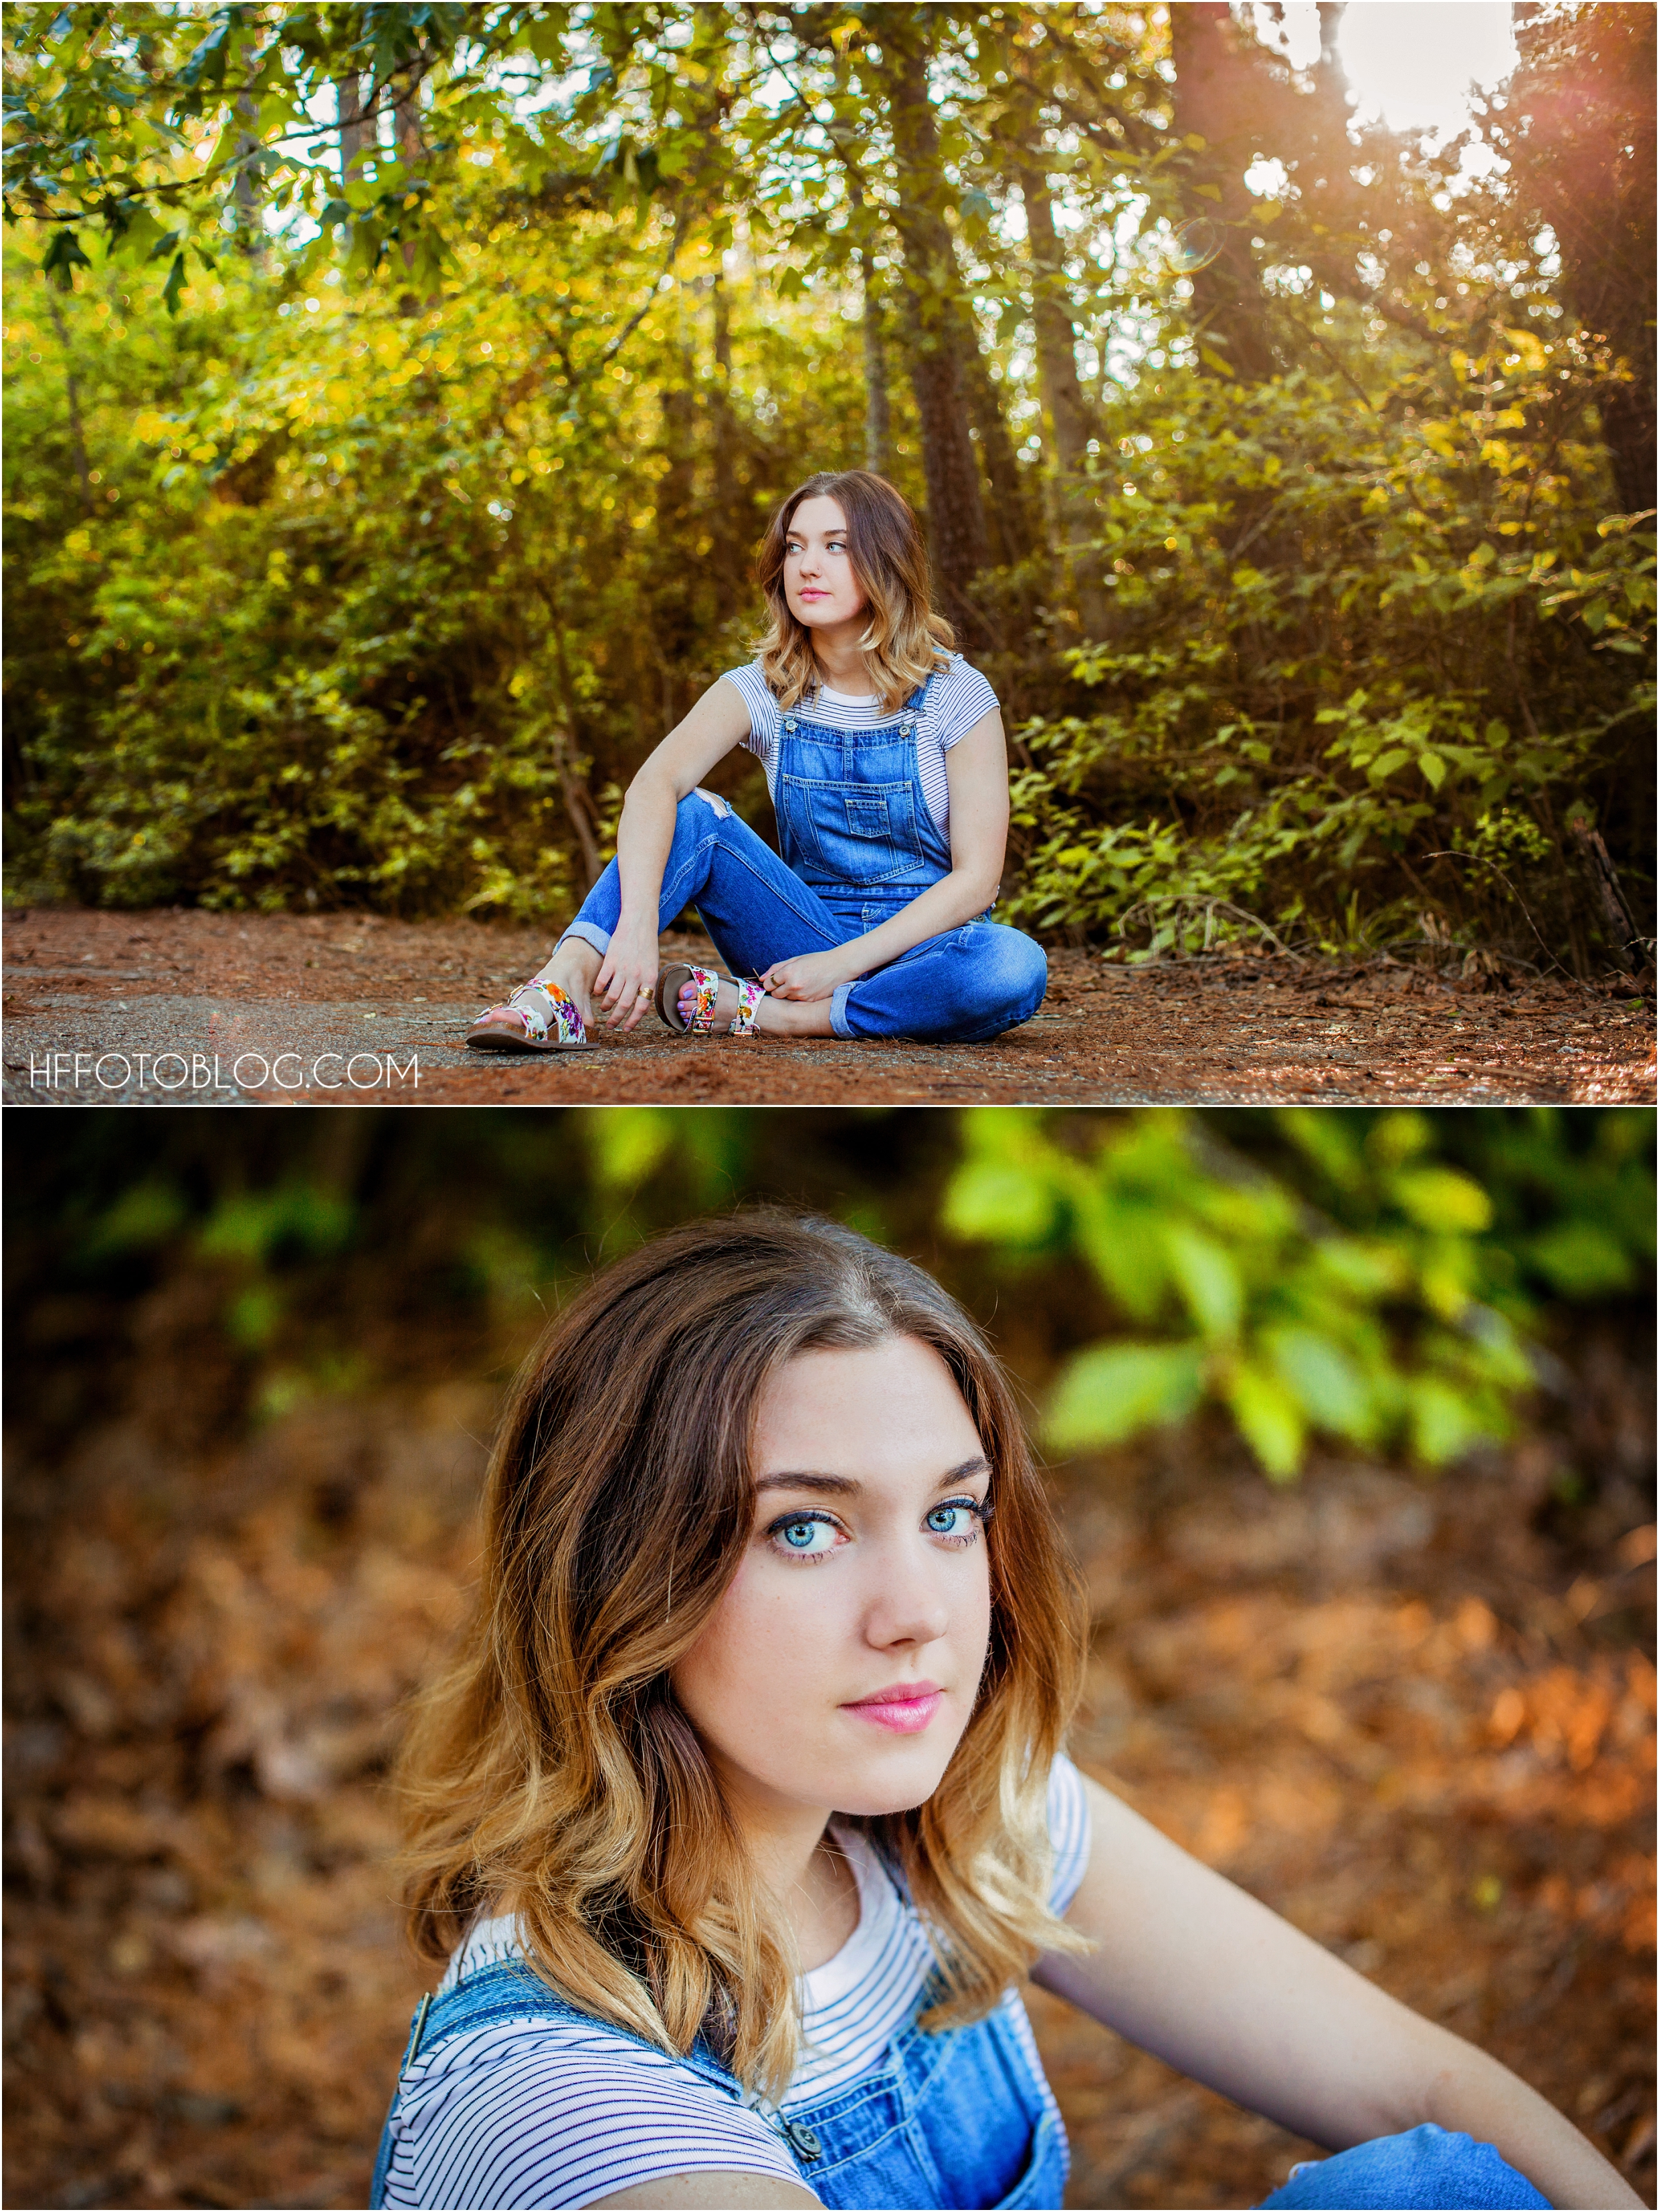 HF Photography, lake charles, lake charles photographer, lake charles senior photographer, lake charles senior shoot, senior session, moss bluff senior, boho senior shoot, boho senior session, hippy senior shoot, hippy senior session, overall senior shoot, overalls, cap and gown, graduation, class of 16, 2016, class of 2016, sam houston high school class of 16, downtown lake chalres, downtown lake charles senior session, vintage senior photos, maggie the deer, peace sign senior photos,